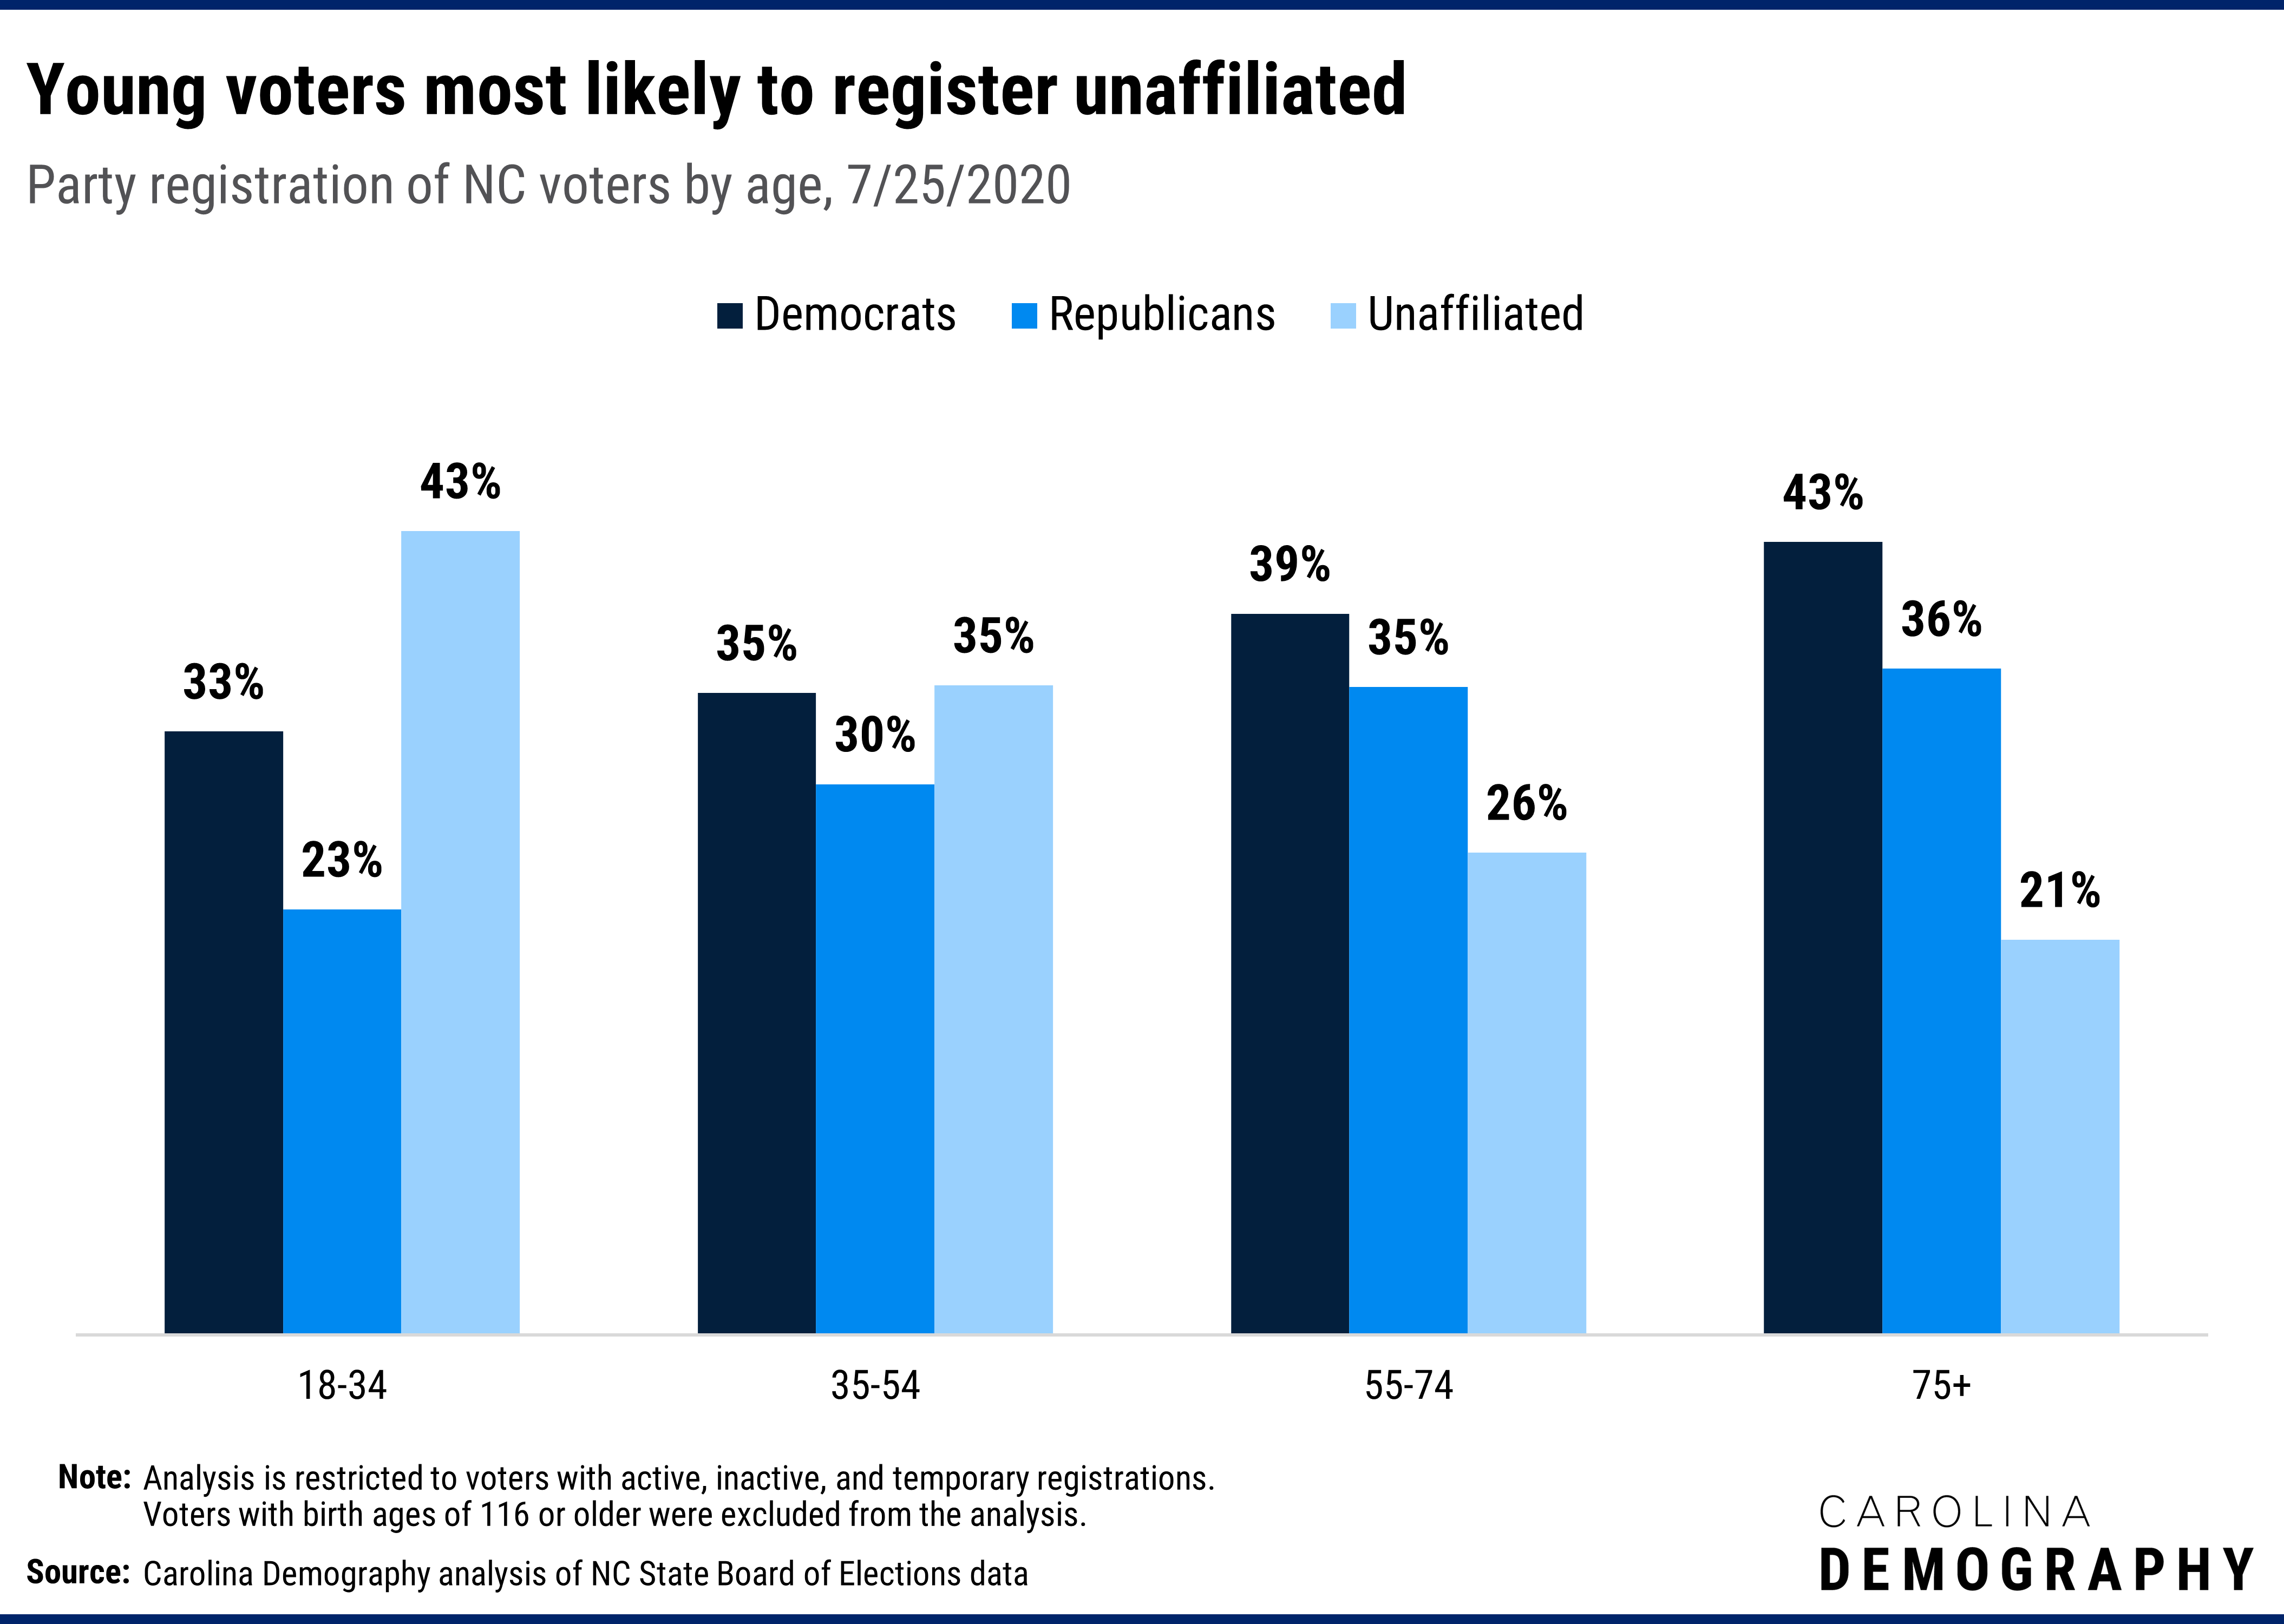 Young voters most likely to register unaffiliated Party registration of NC voters by age, 7/25/2020. Young voters are more likely to register as unaffiliated than any other age group: 43% of 18-34 year-olds are registered unaffiliated versus 35% of 35-44 year-olds, 26% of 55-74 year-olds, and 21% of voters 75 and older.